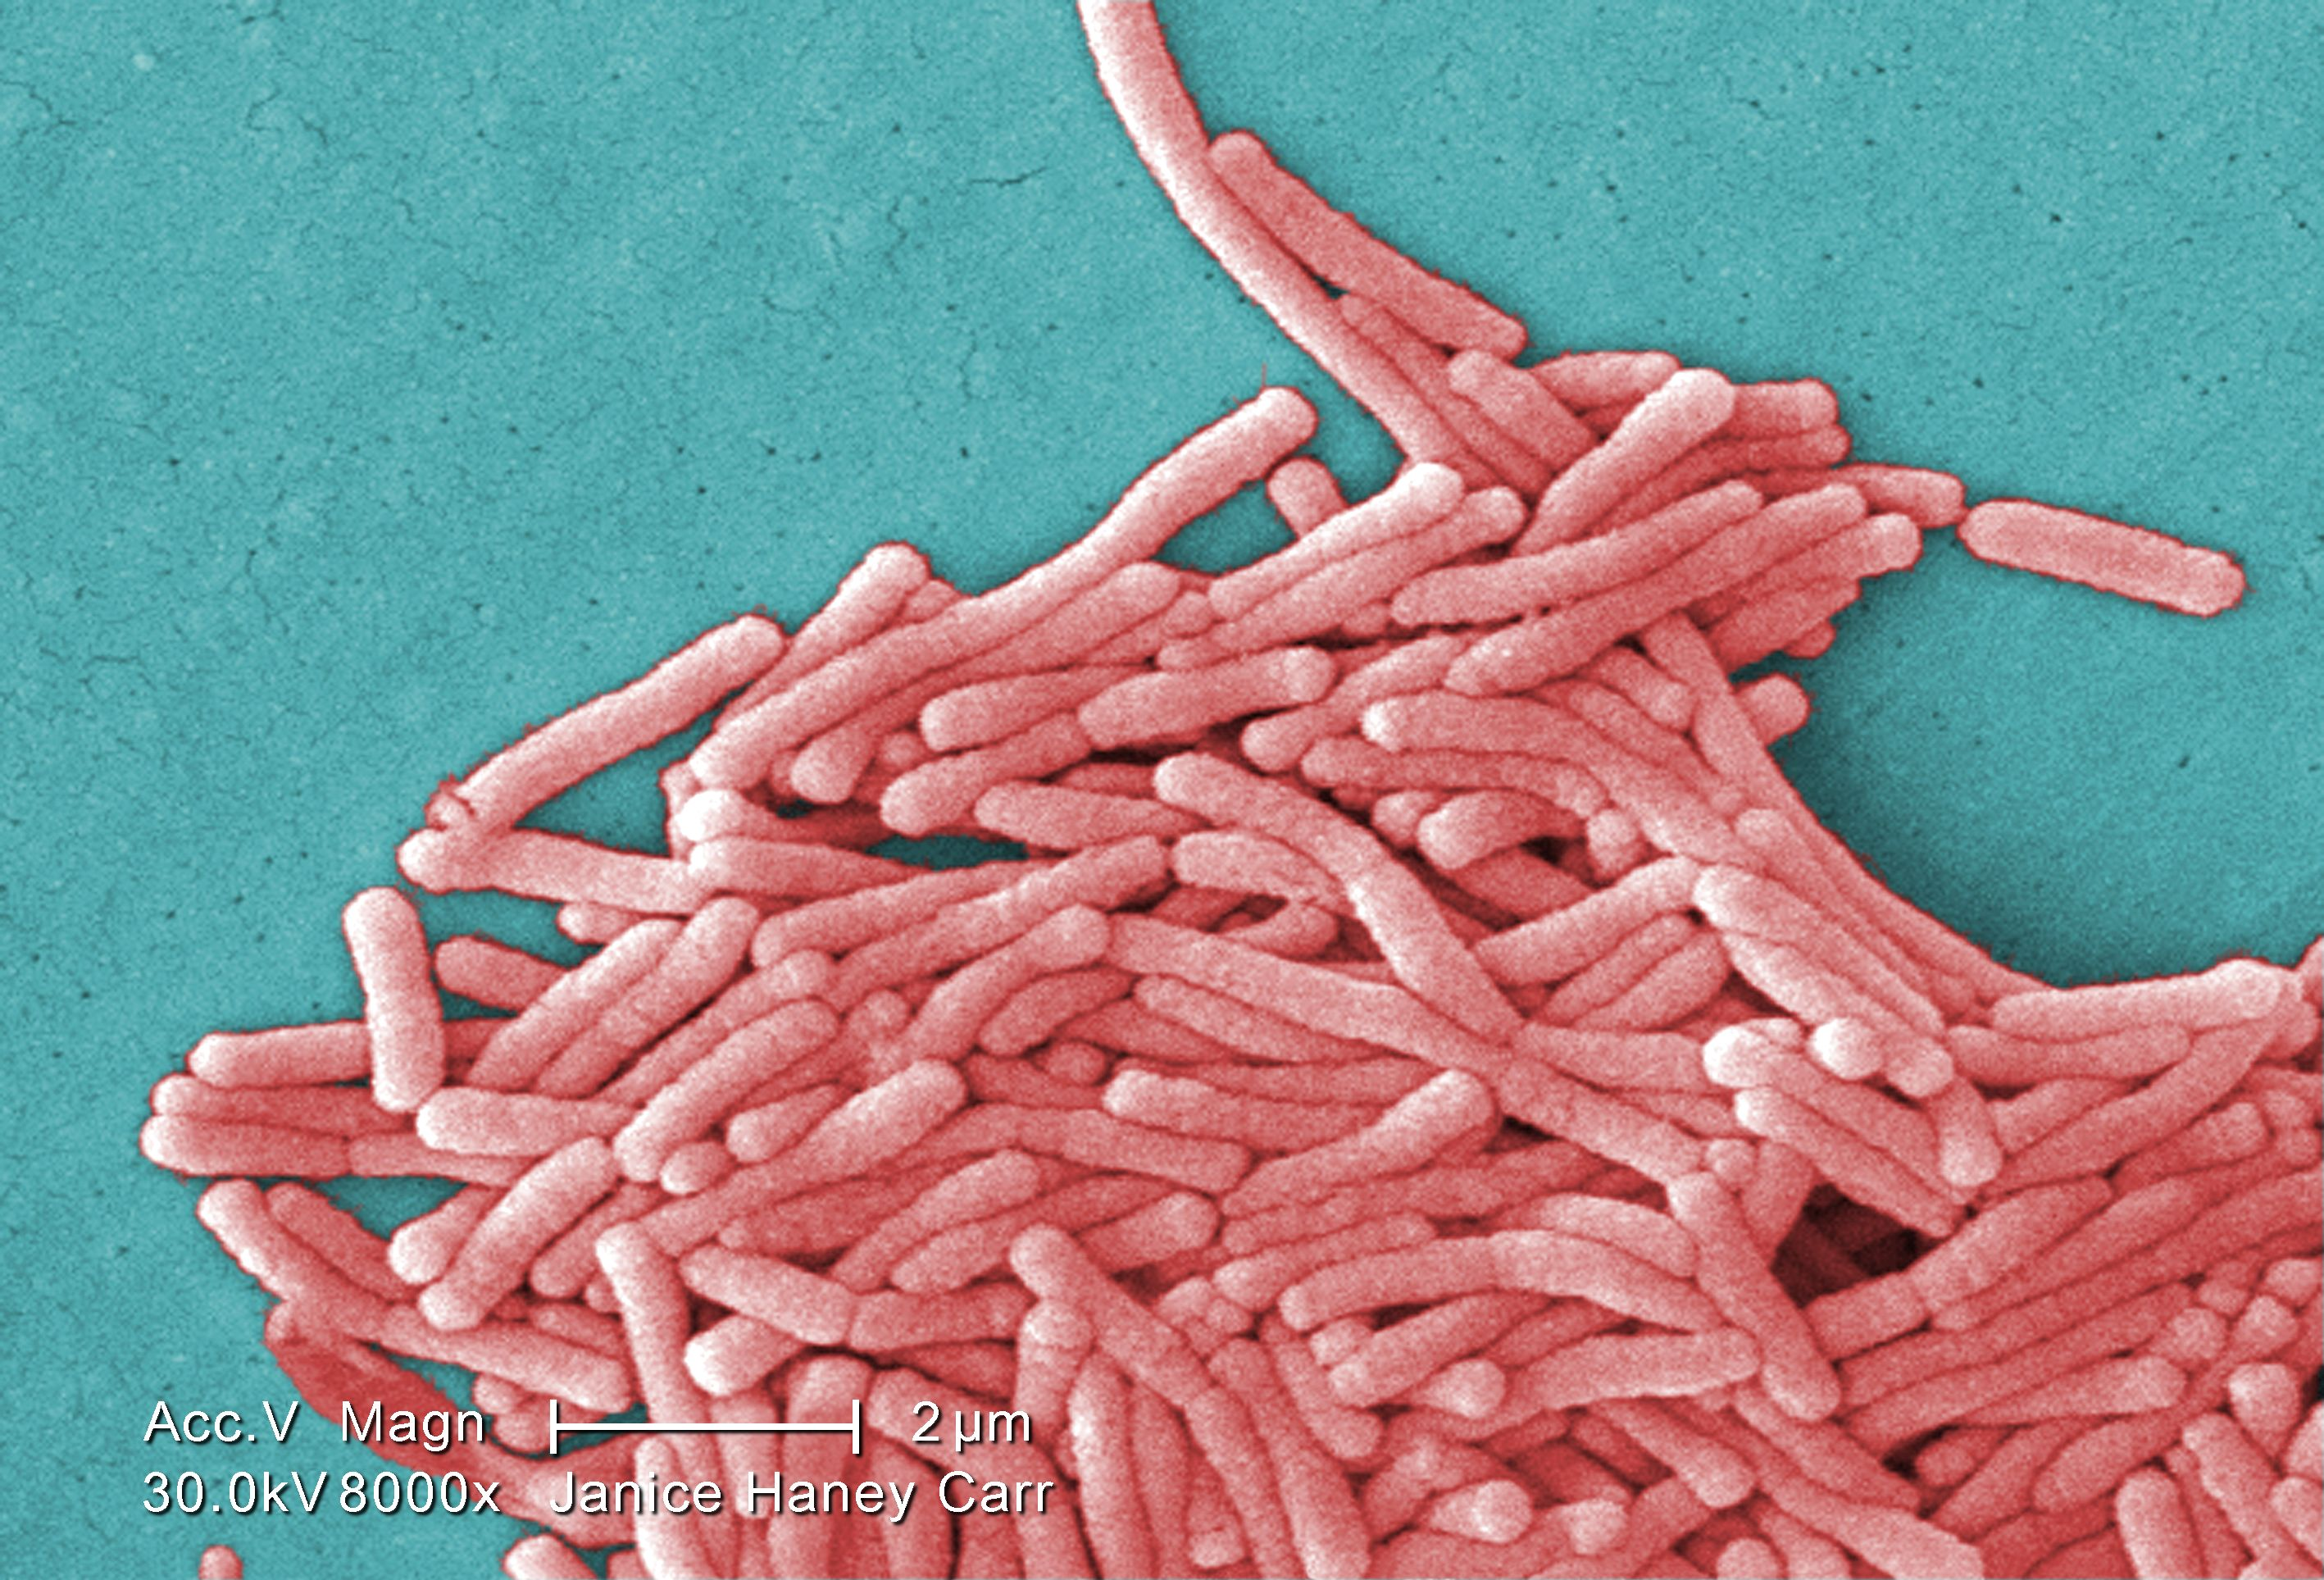 Why Are People Still Dying from Legionnaires' Disease? - Motherboard